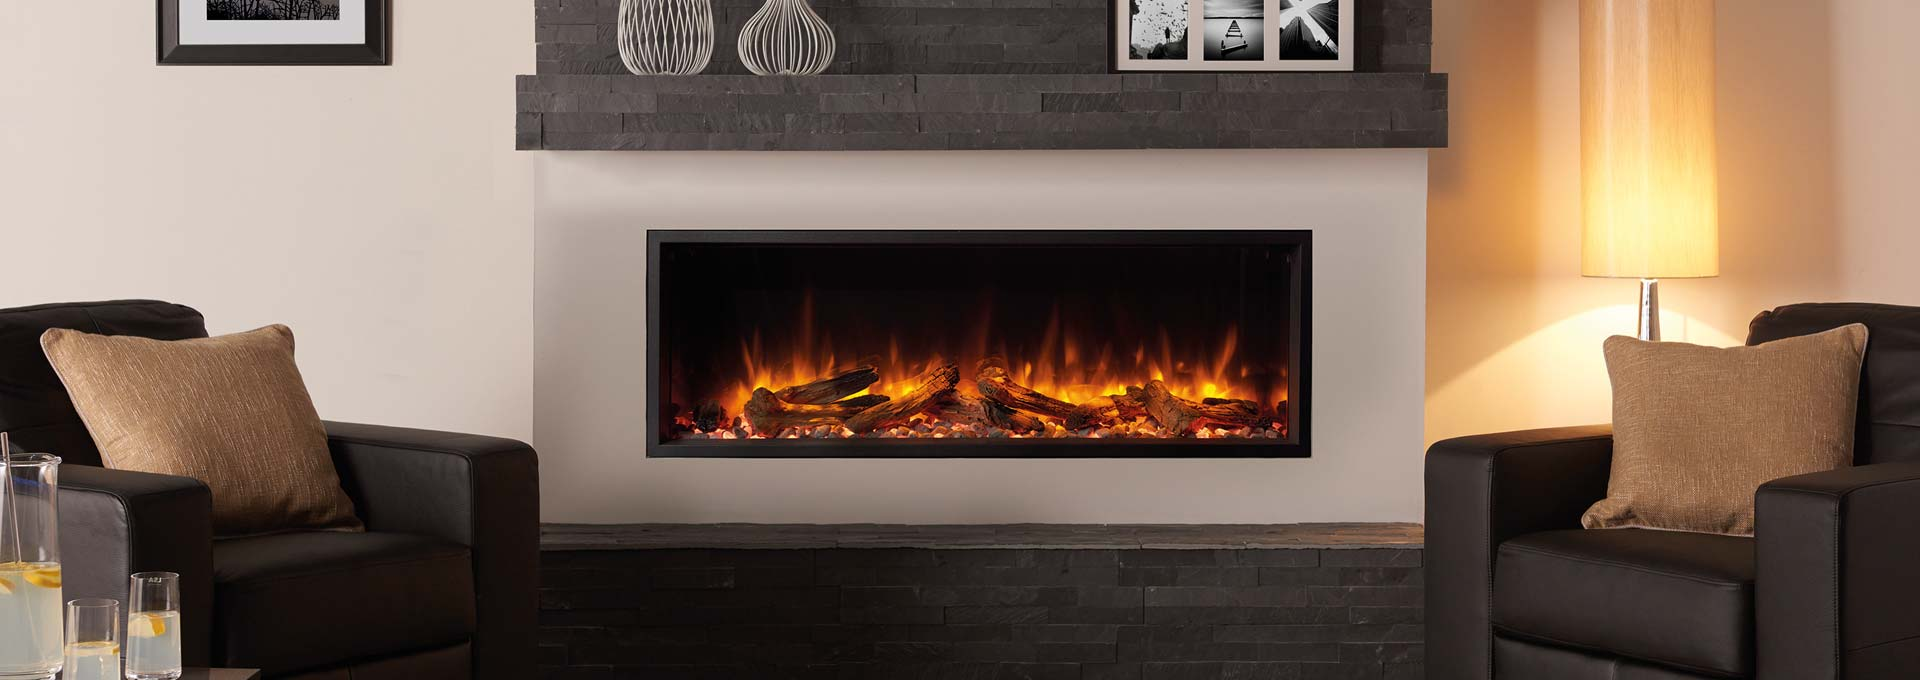 26+ Chimney Free Electric Fireplaces Costco Wallpapers